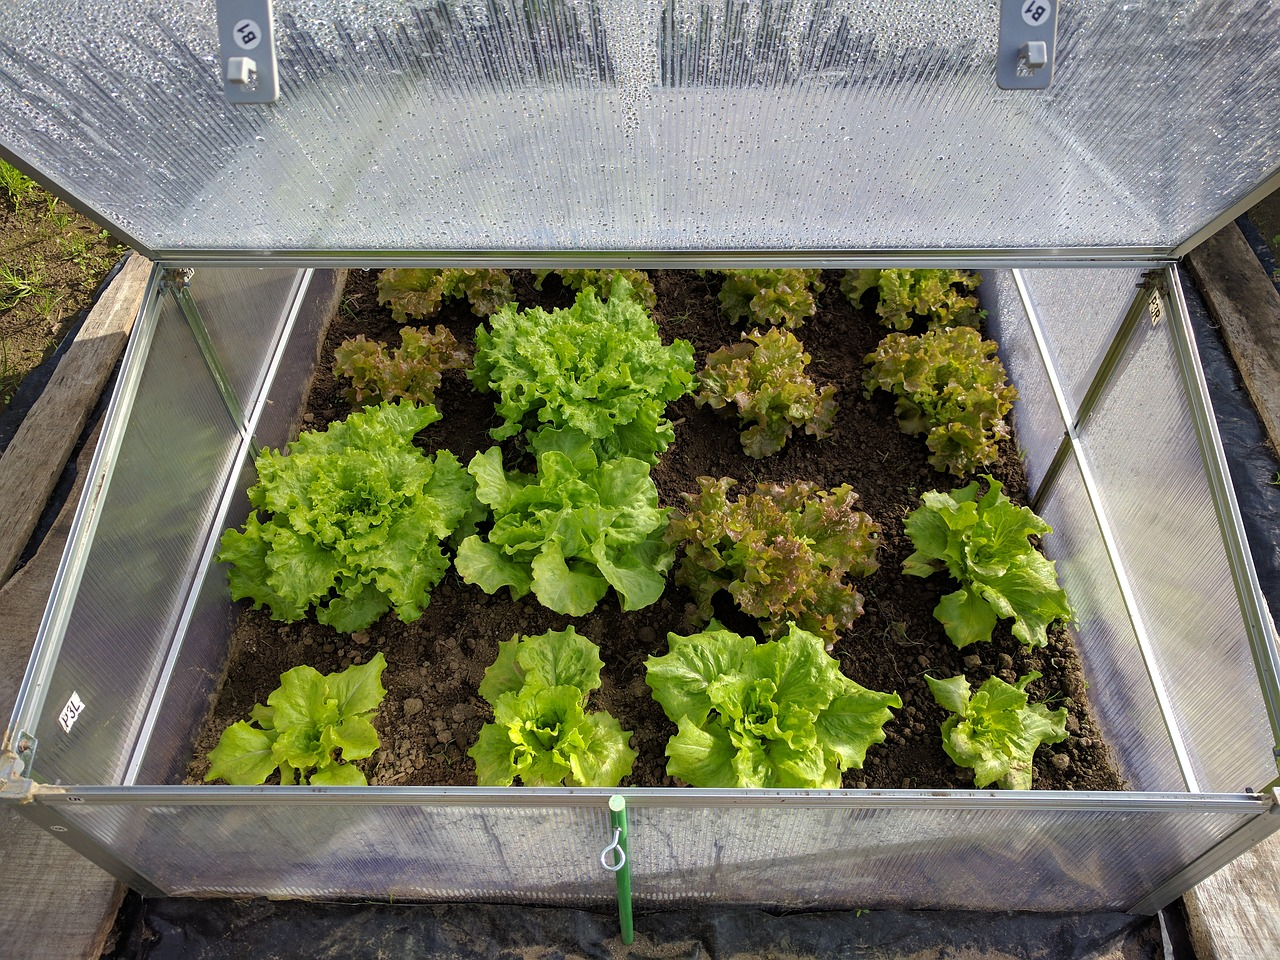 Avoid Common Problems With Your Mini Greenhouse